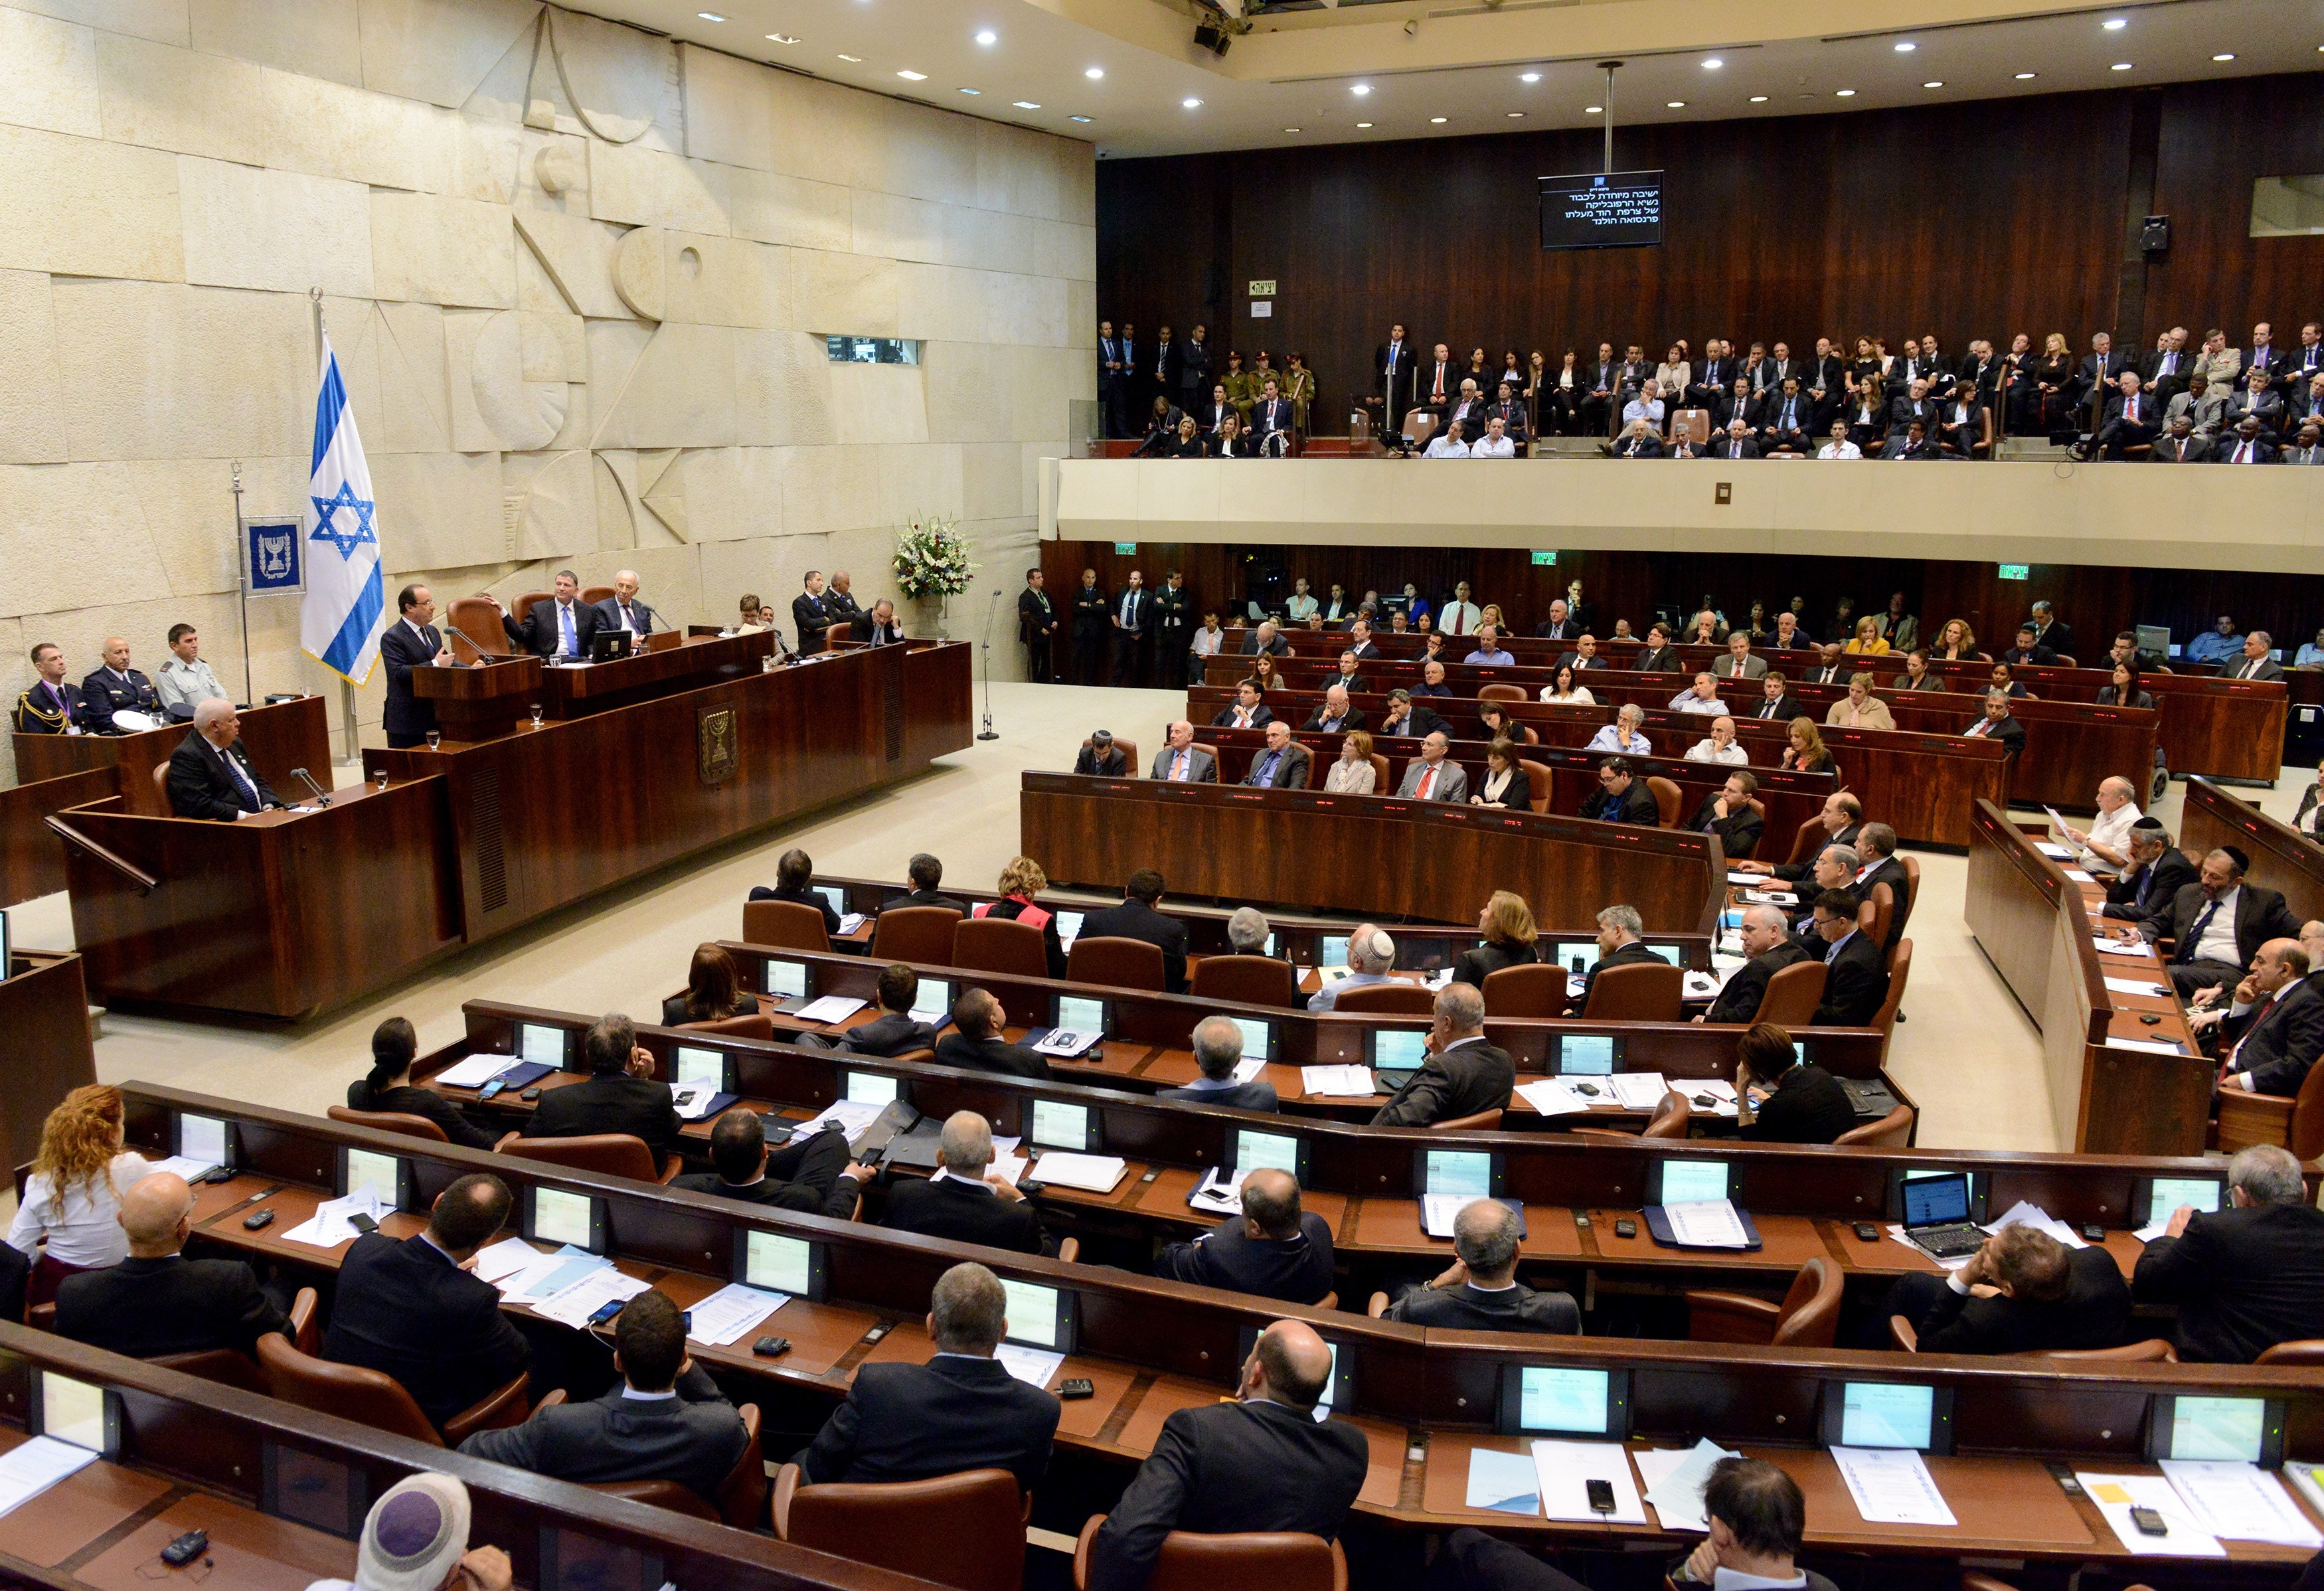 Picture of The Knesset by Rafael Nir on Unsplash